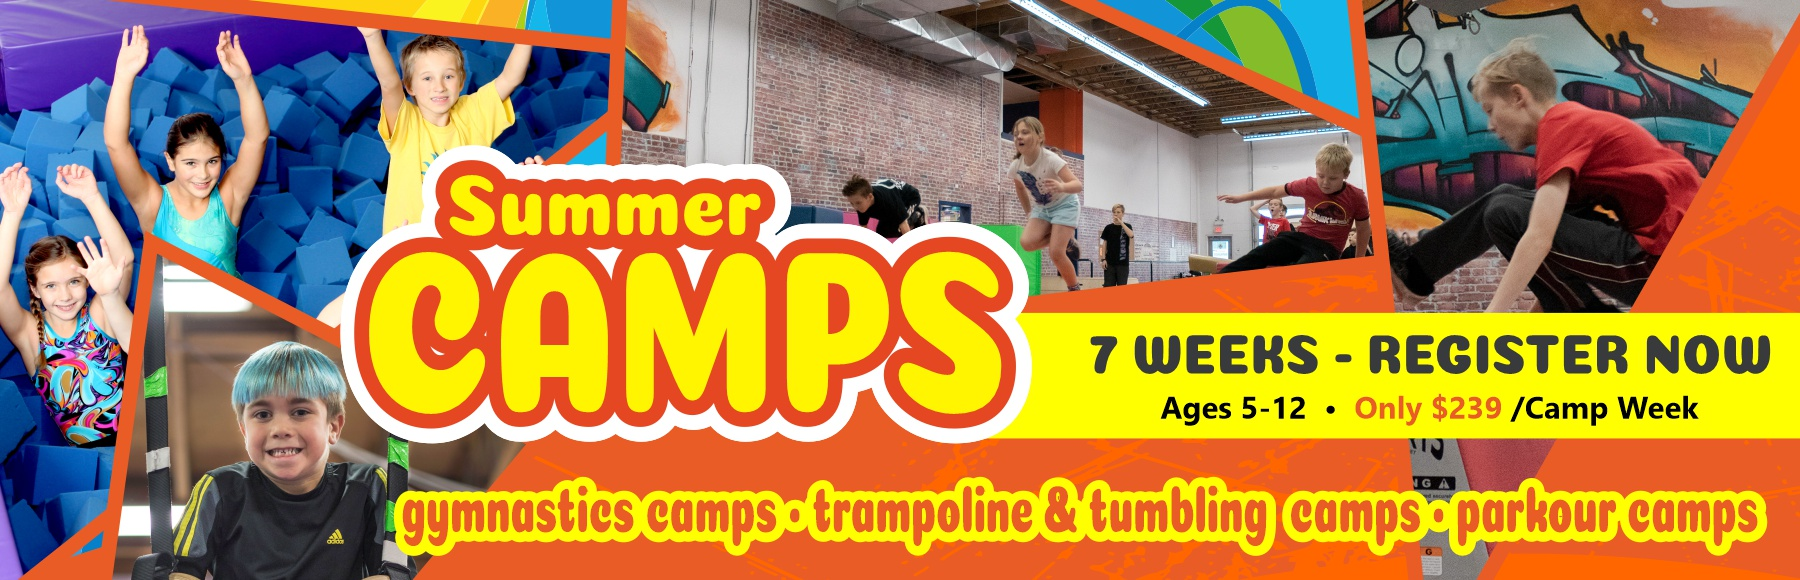 kelowna gymnastics summer camps 2019